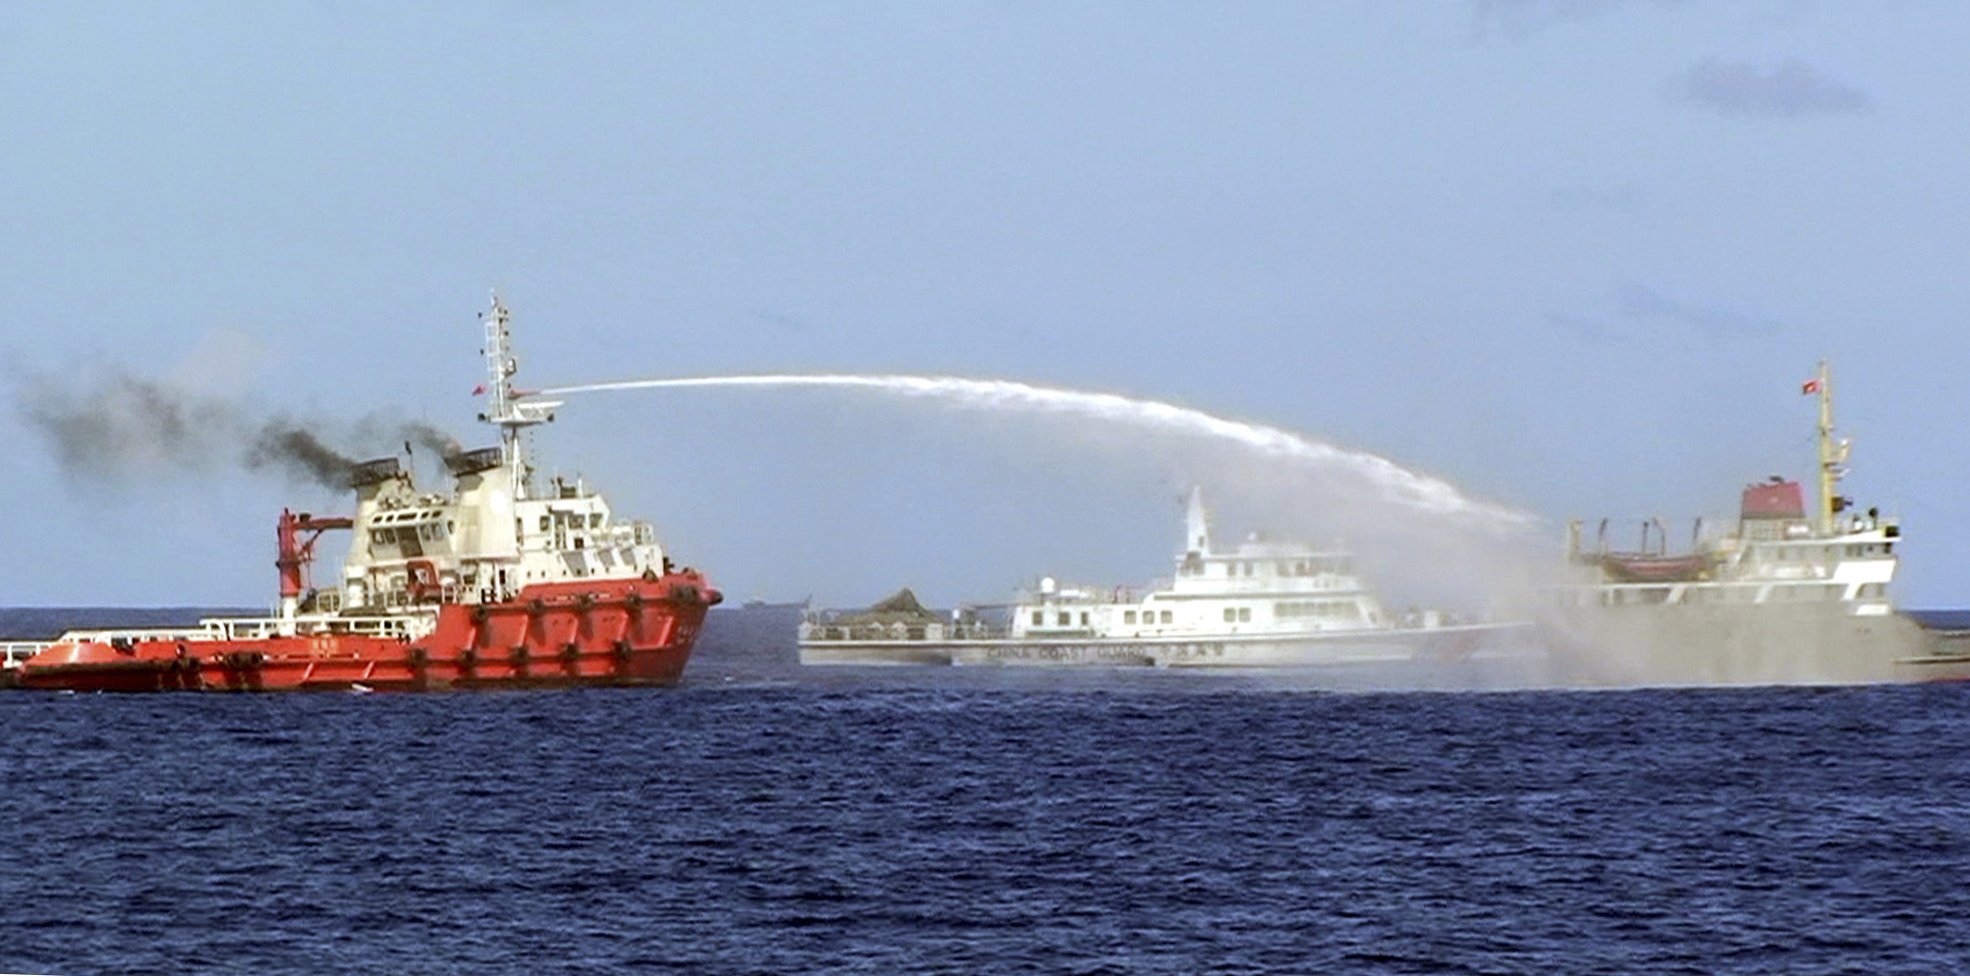 In this photo, released by the Vietnamese Coast Guard, a Chinese ship, left, shoots water cannon at a Vietnamese vessel, right, while a Chinese Coast Guard ship, center, sails alongside in the South China Sea off Vietnam's coast, Wednesday, May 7, 2014. Chinese ships rammed and sprayed water cannon at Vietnamese vessels trying to stop Beijing from setting up an oil rig in the area, according to Vietnamese officials and video evidence.